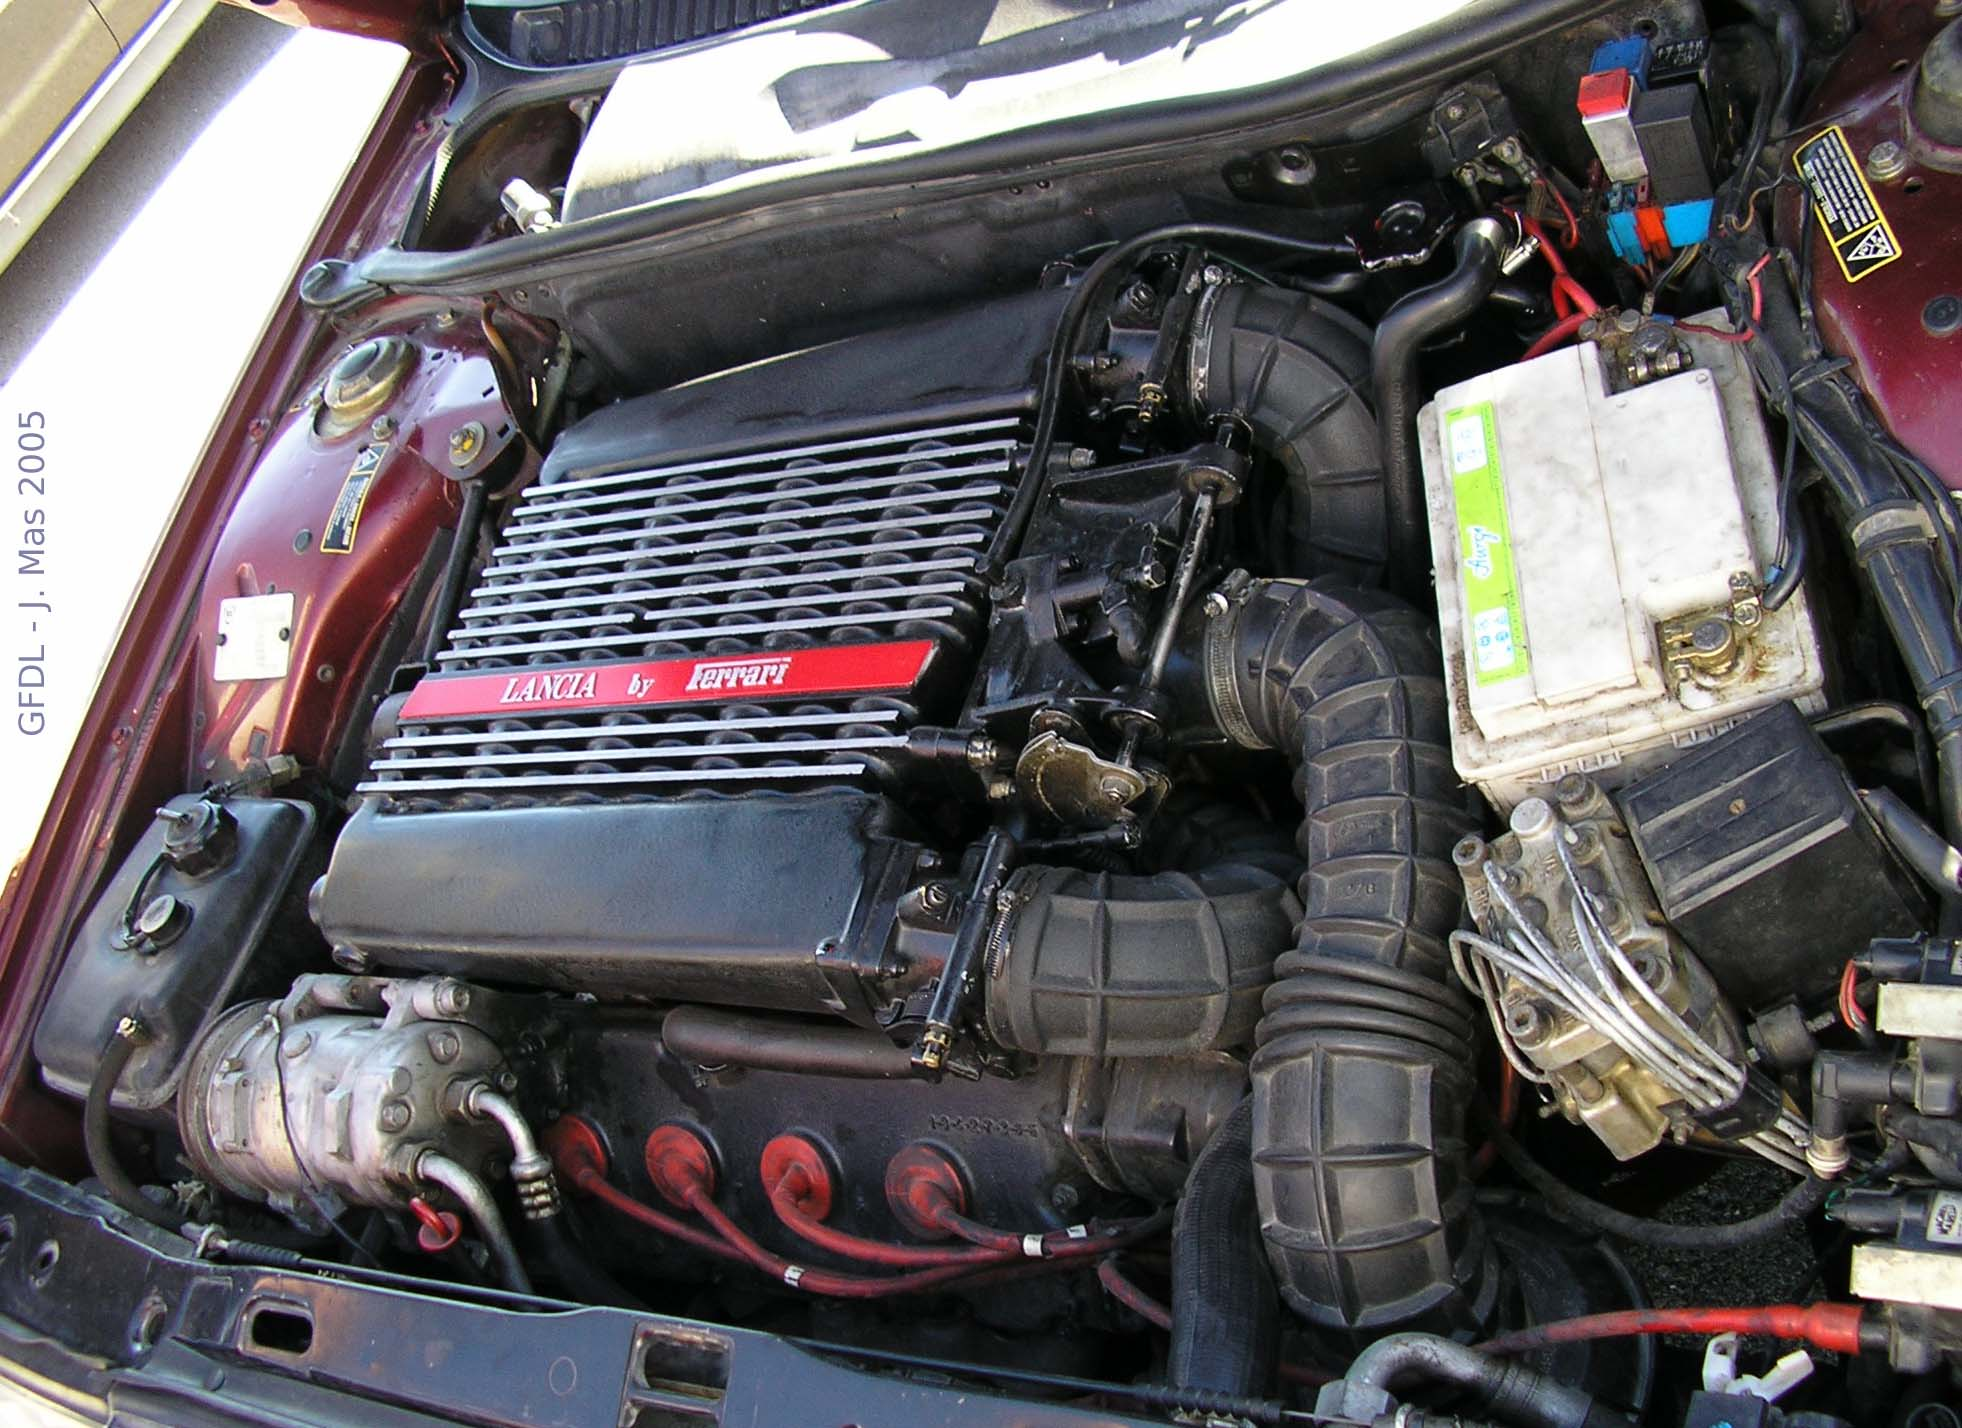 Alfa romeo 75 v6 engine for sale